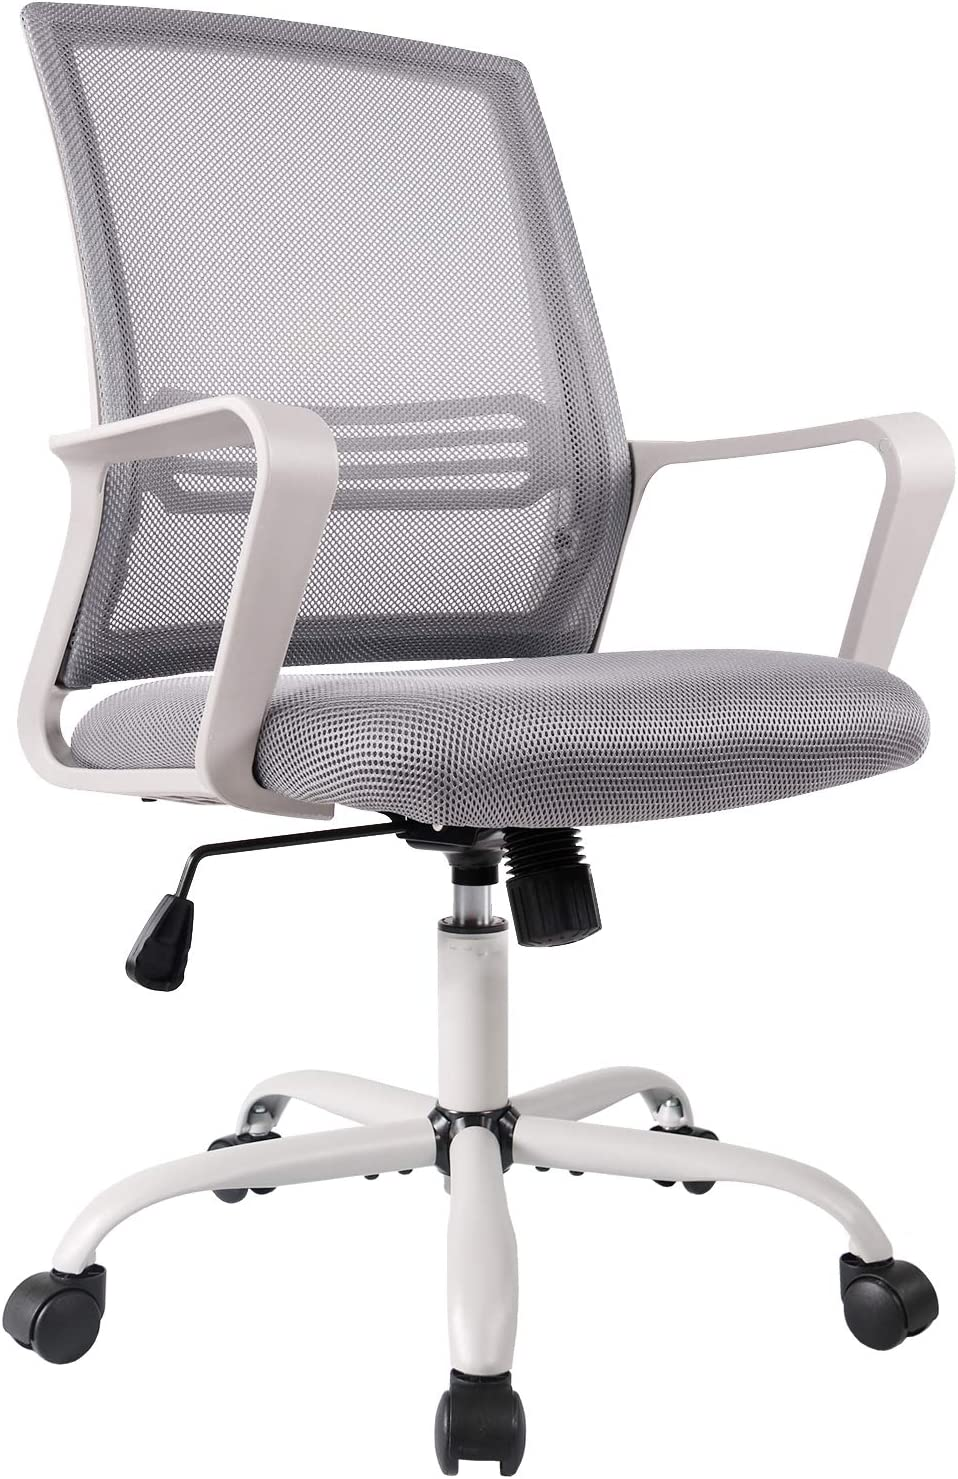 Office Chair Mid List price Surprise price Back Desk Mesh Chairs Computer Home Off